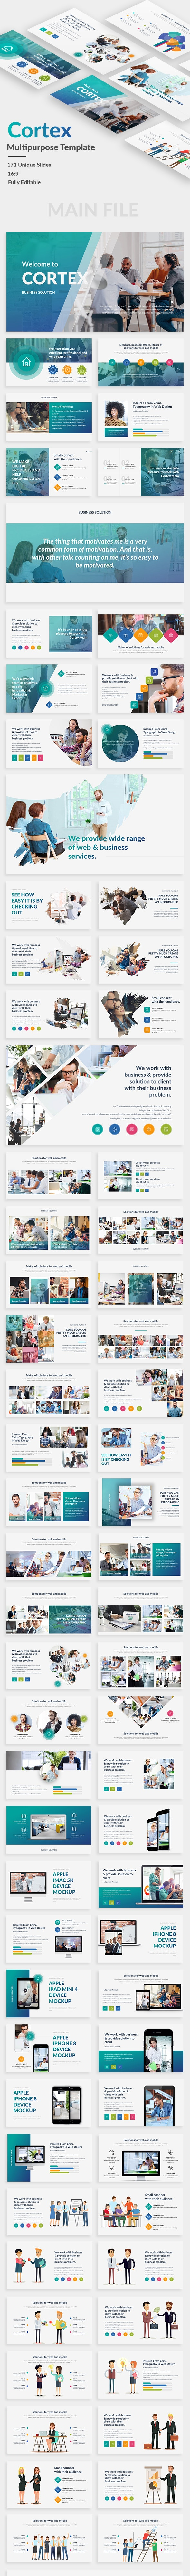 Cortex Multipurpose Keynote Template - Business Keynote Templates